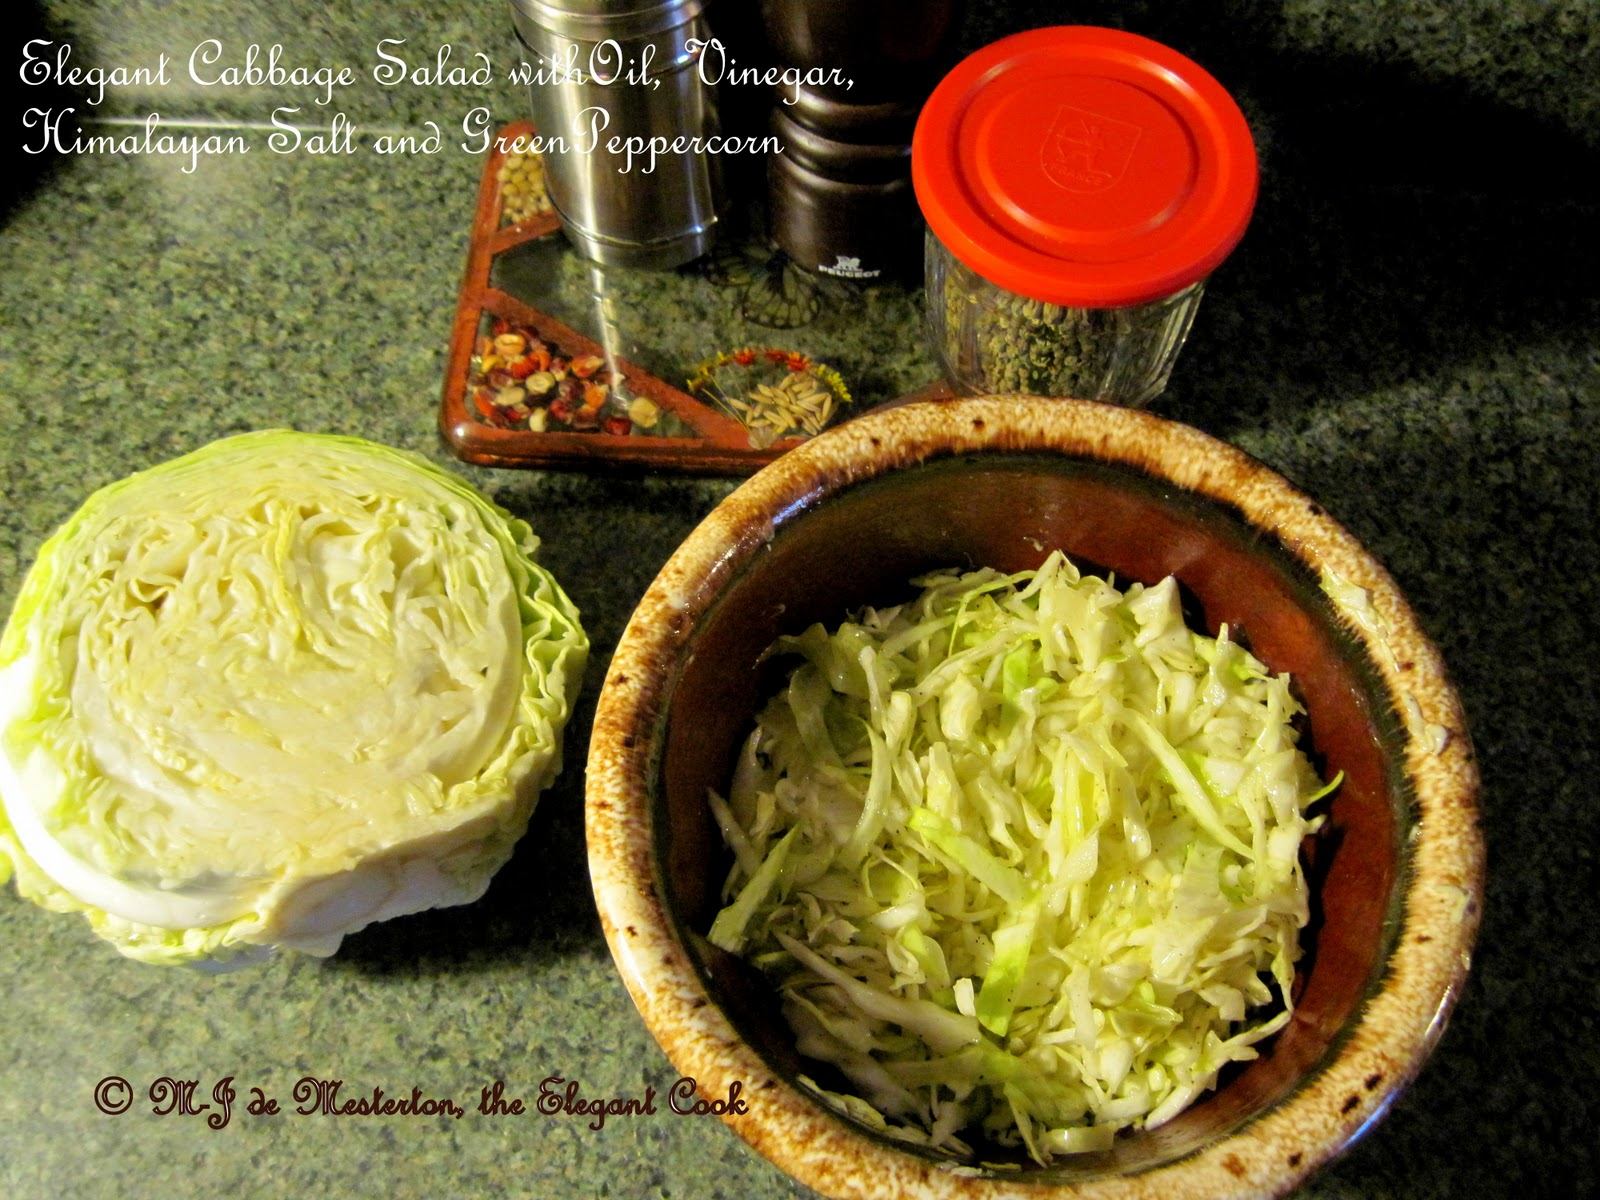 Green cabbage can be marinated in a salad European-style, stuffed as c